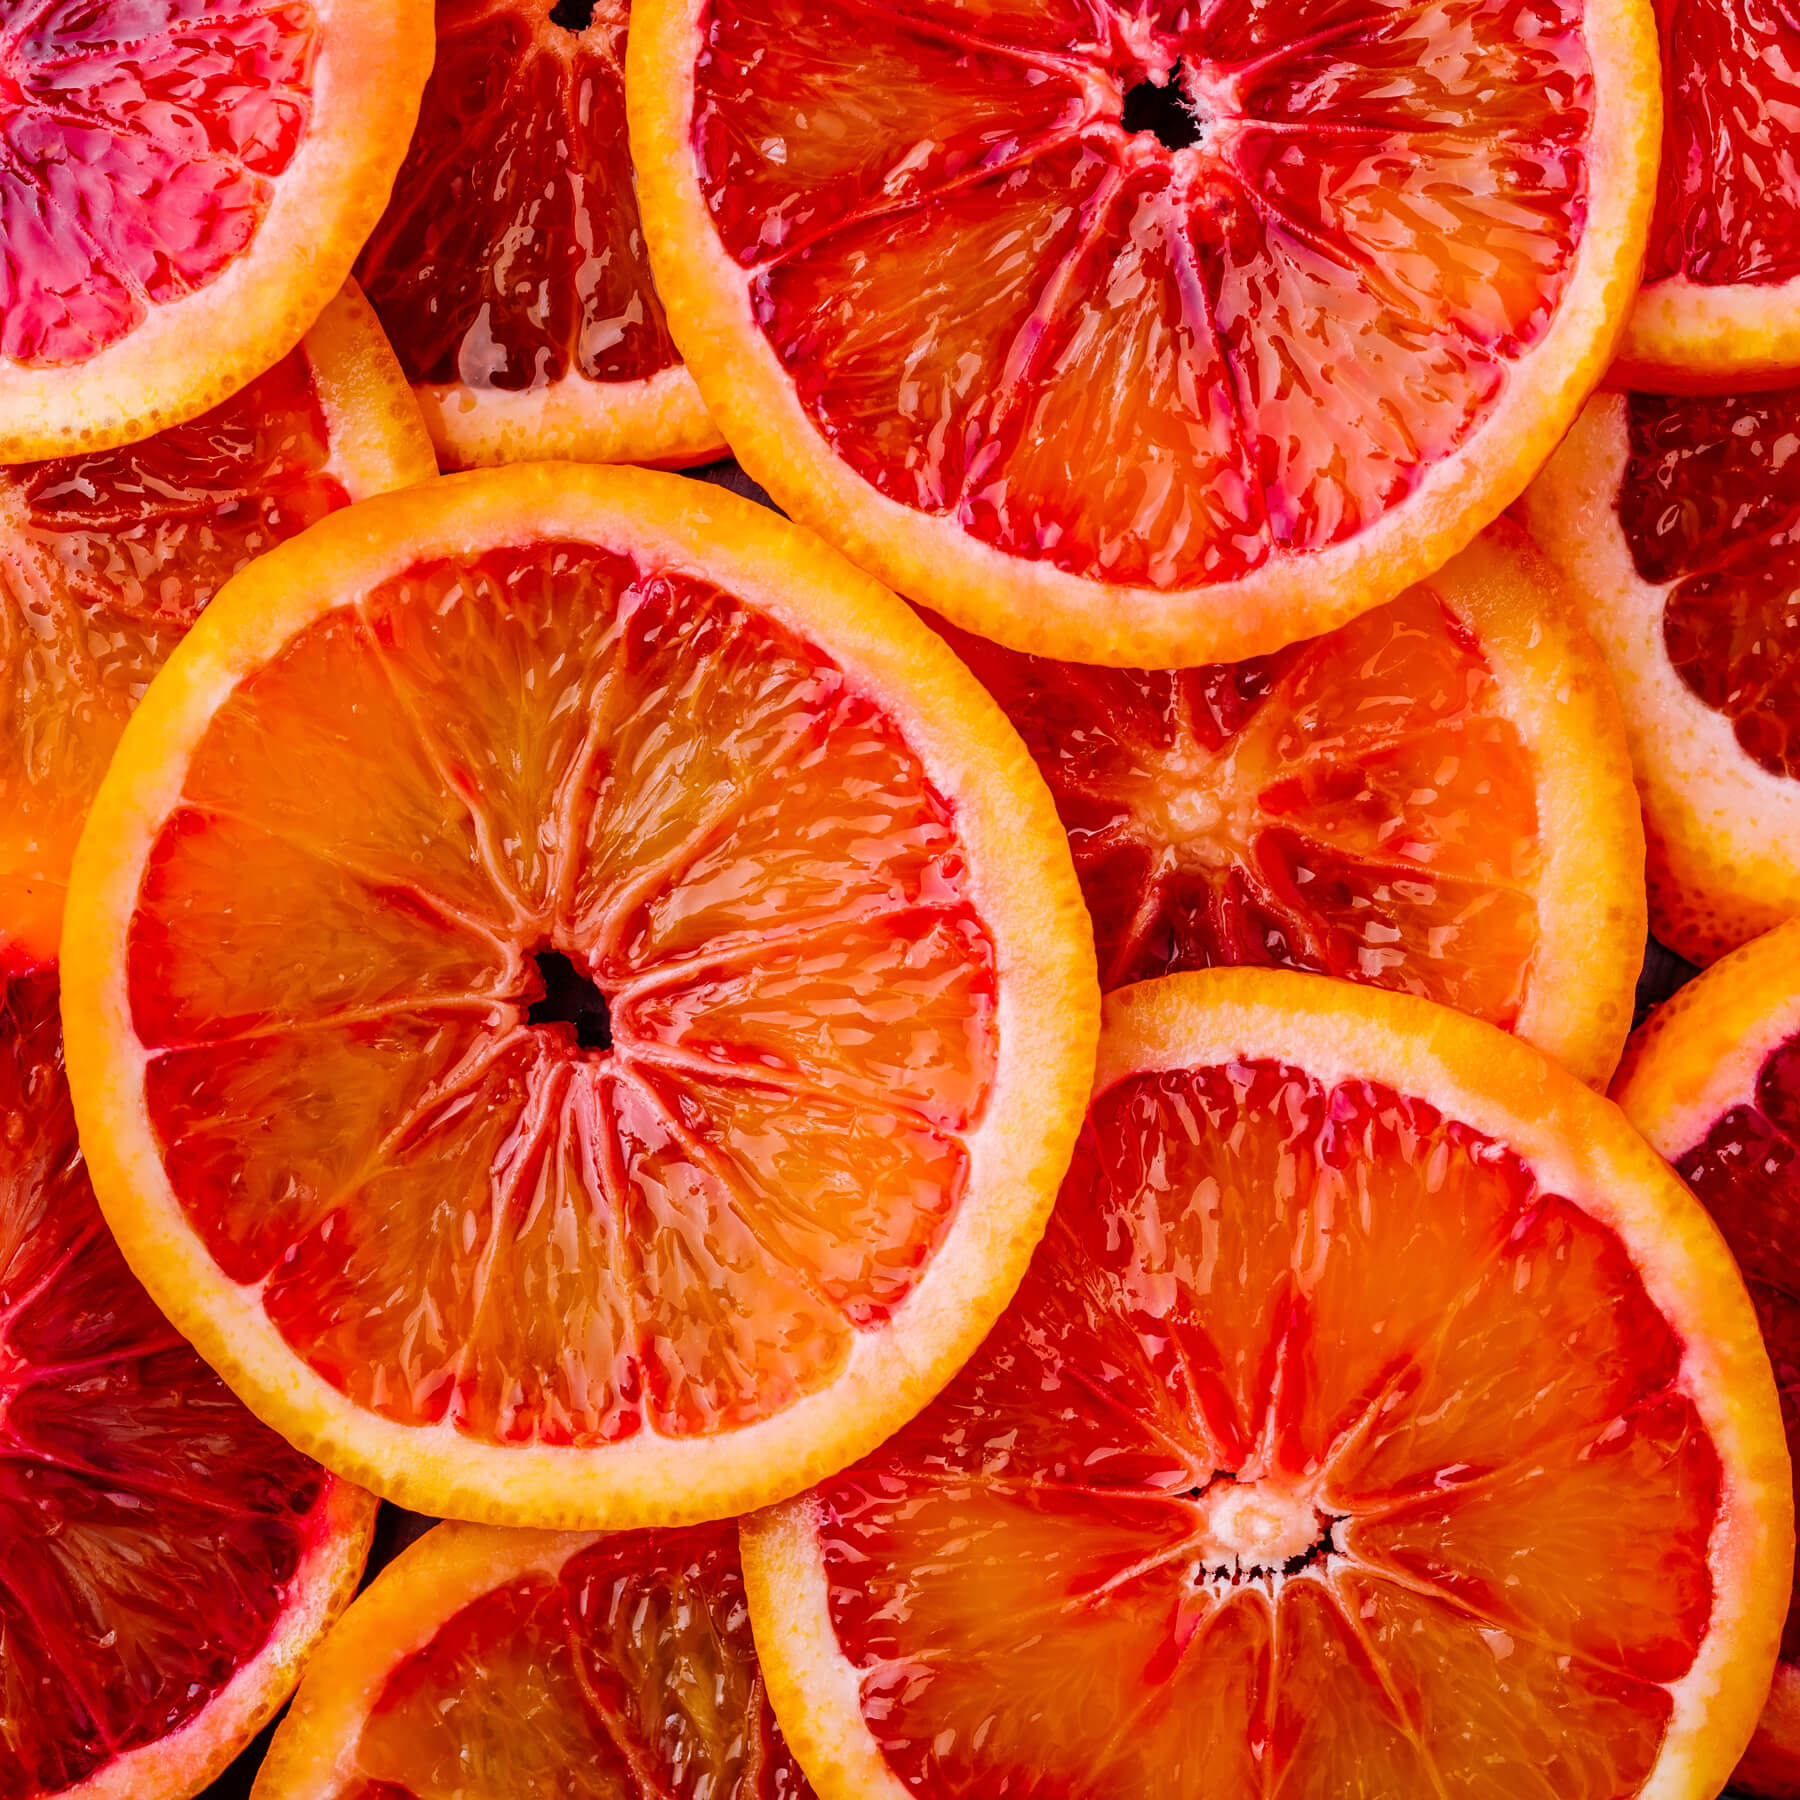 Fresh blood oranges are the base for the EFFEN blood orange flavored vodka.